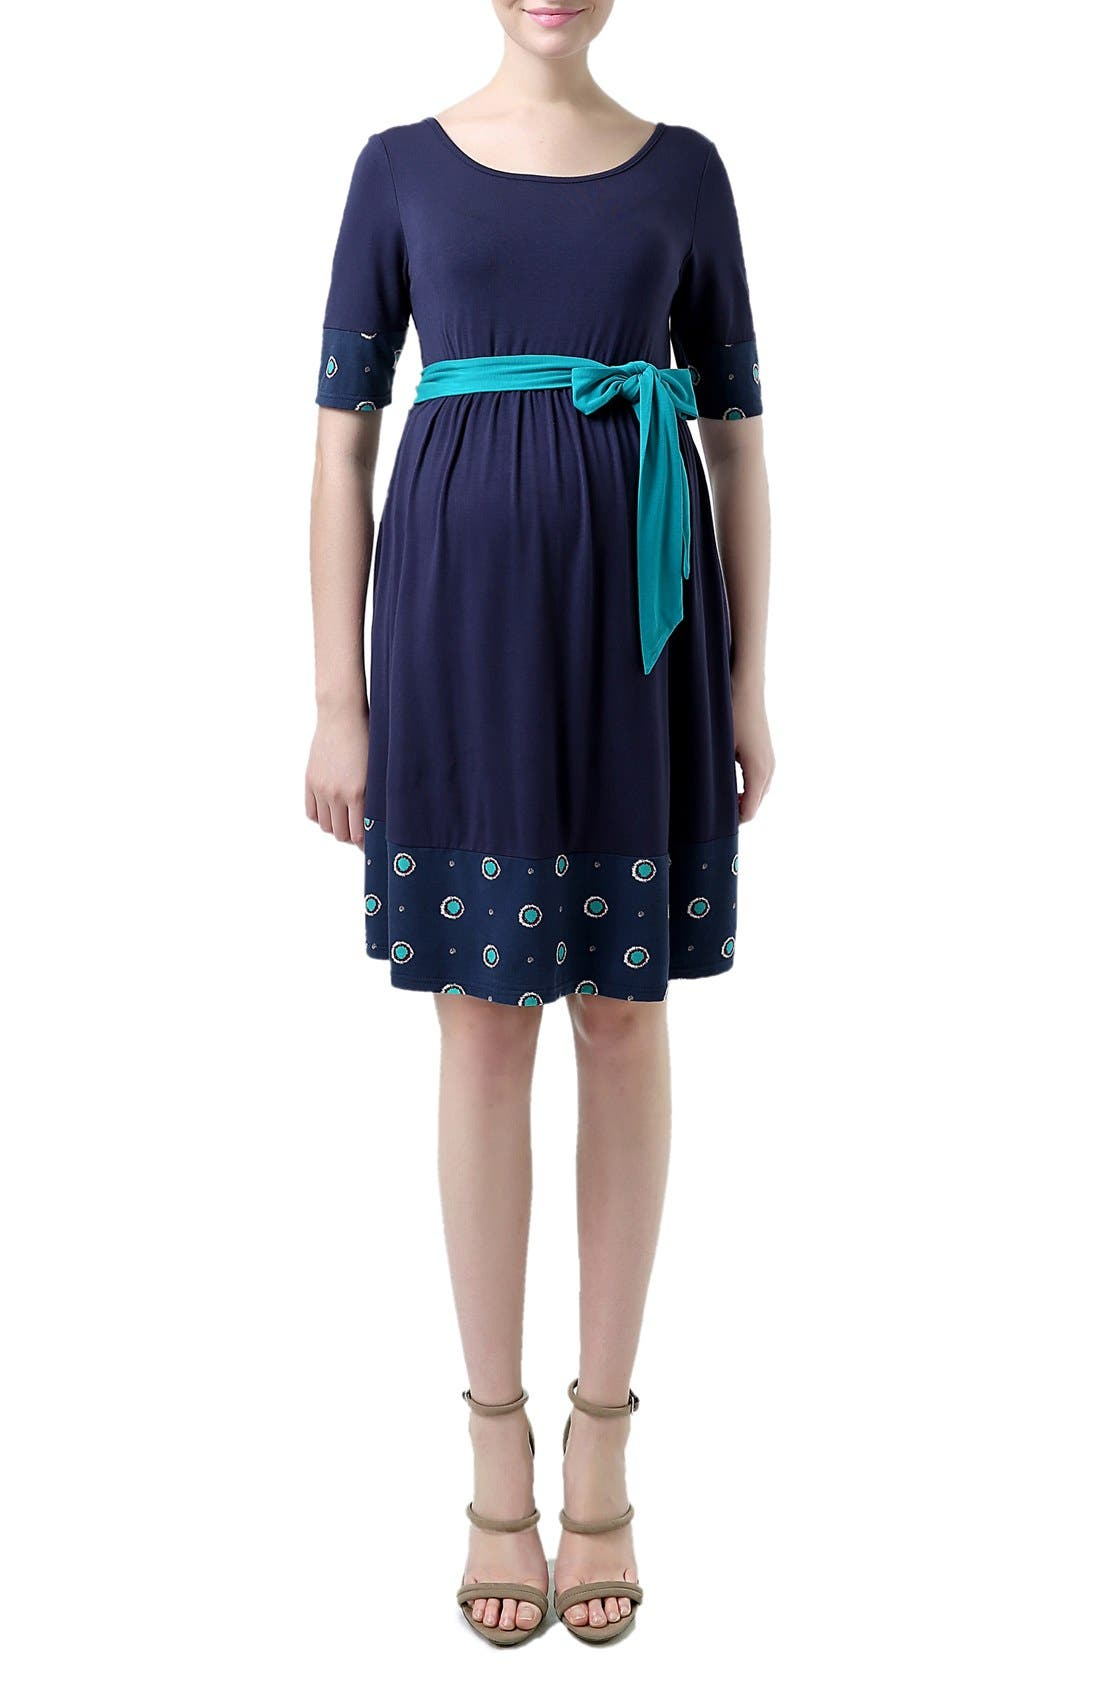 KIMI AND KAI 'Phee' Polka Dot Trim Maternity